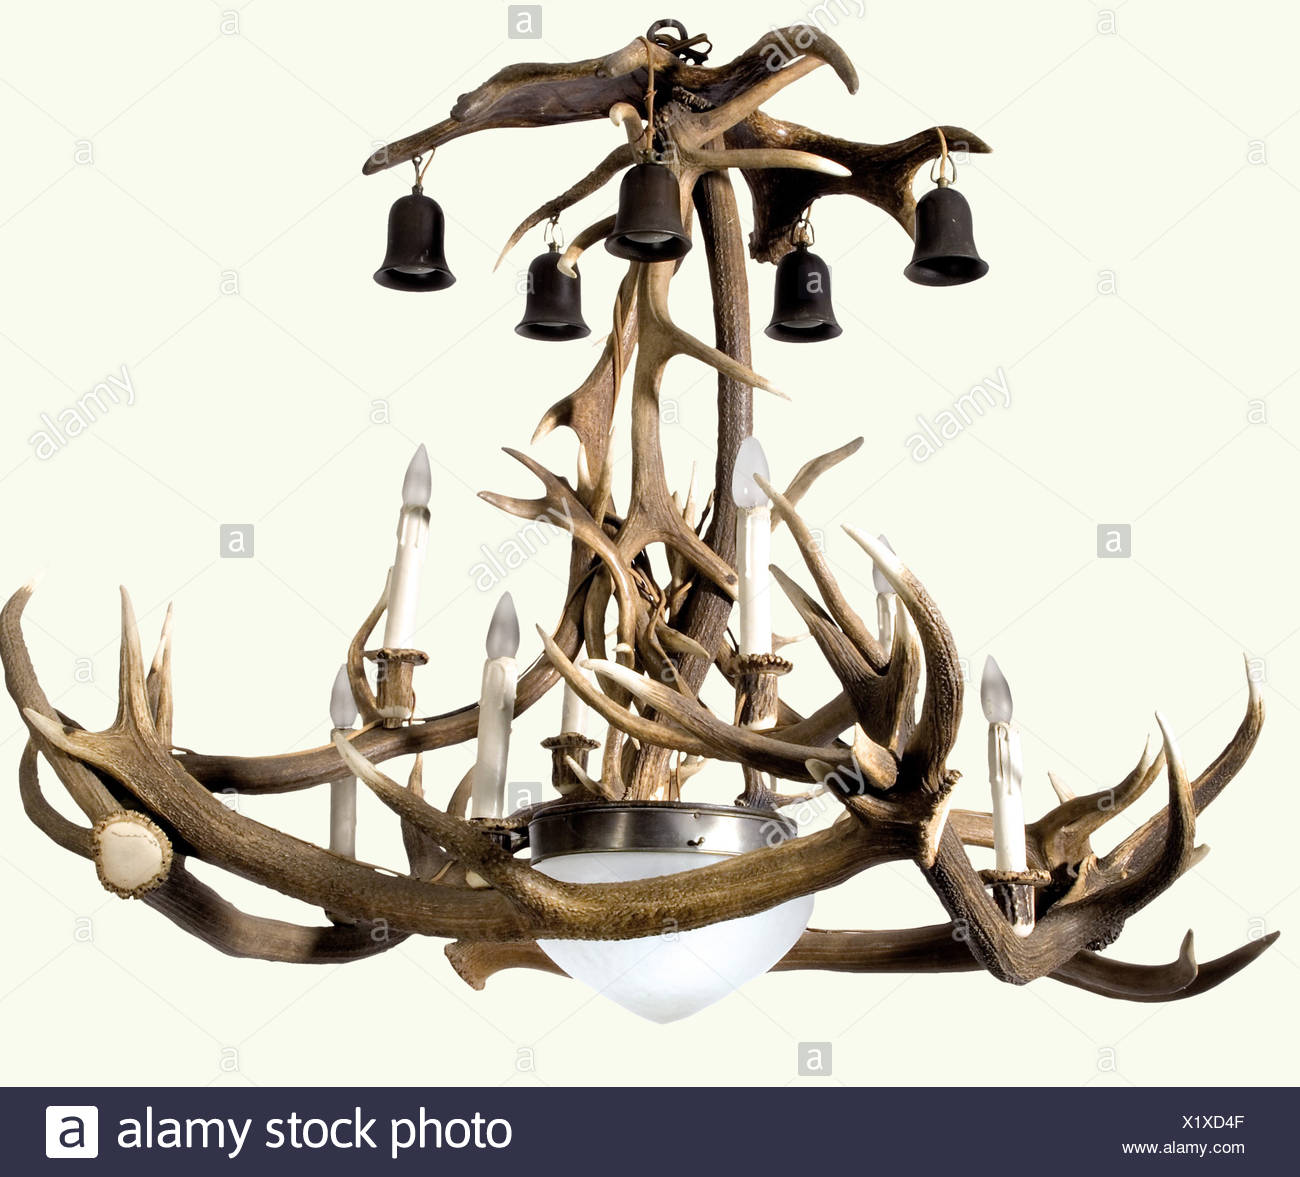 An antler chandelier a large chandelier assembled from antler an antler chandelier a large chandelier assembled from antler tines eight electrical standing lights five hanging lights and general illumination in aloadofball Image collections